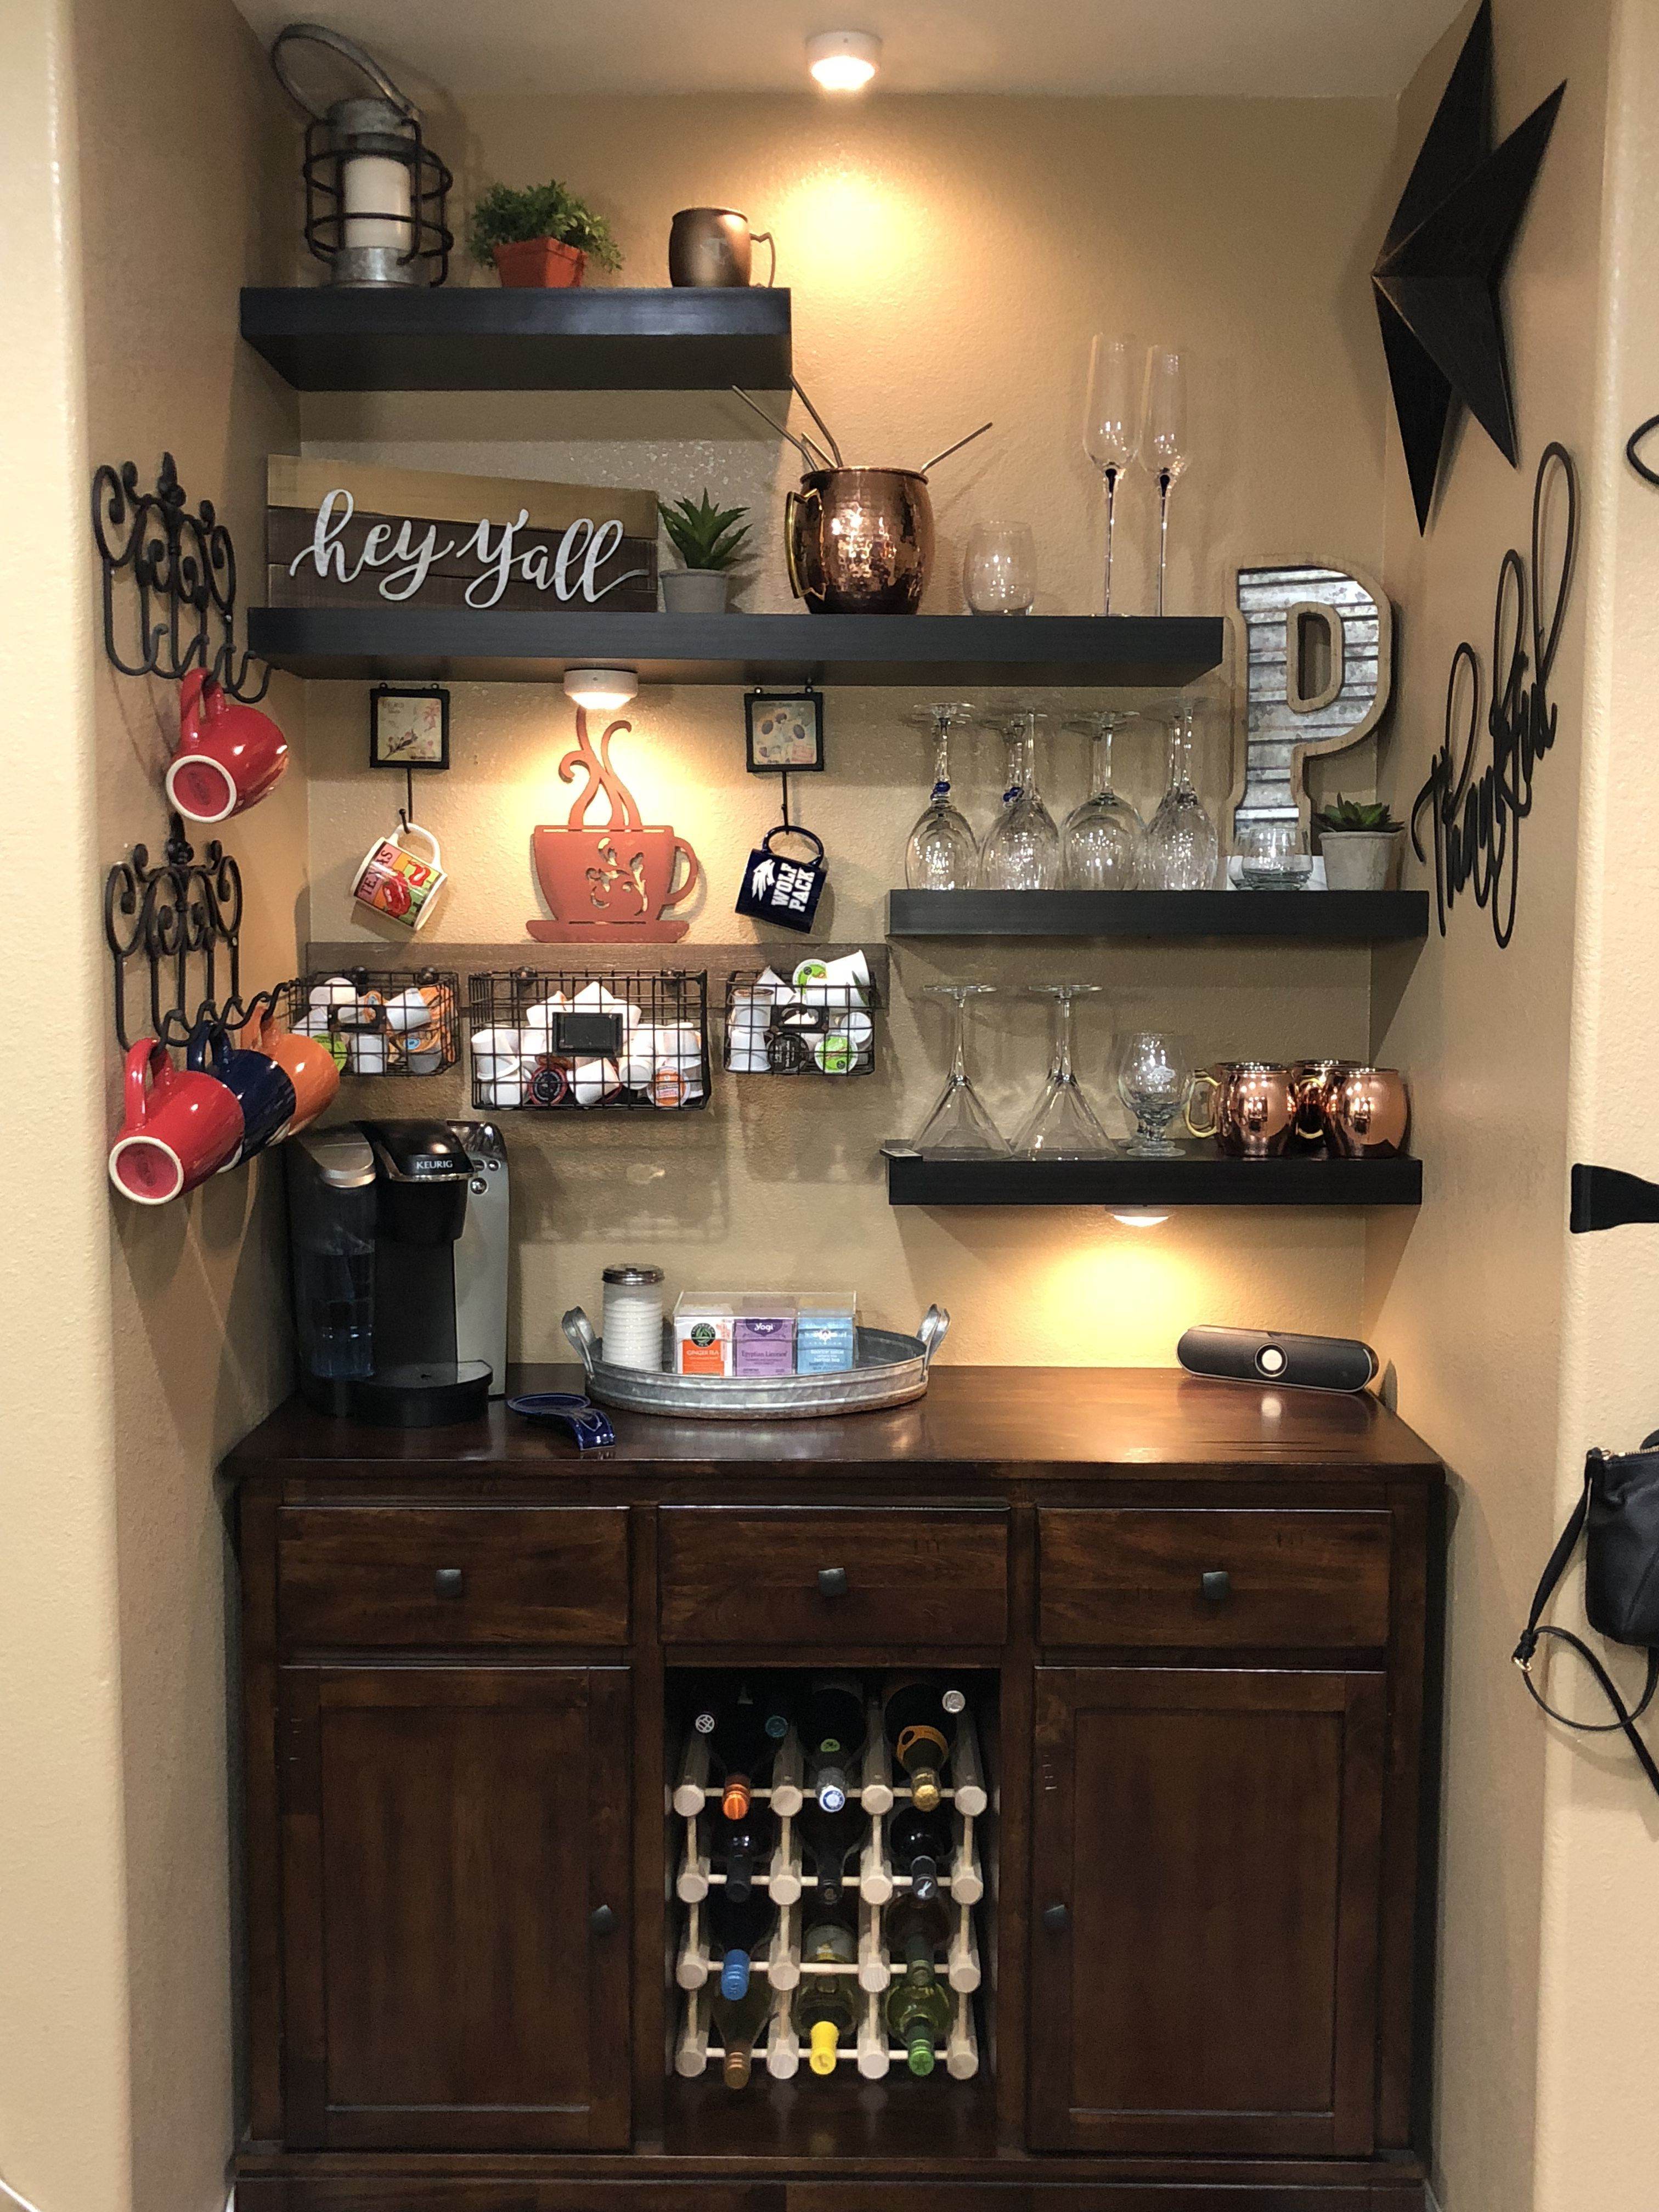 Created my coffee/wine bar! So pleased how it turned out